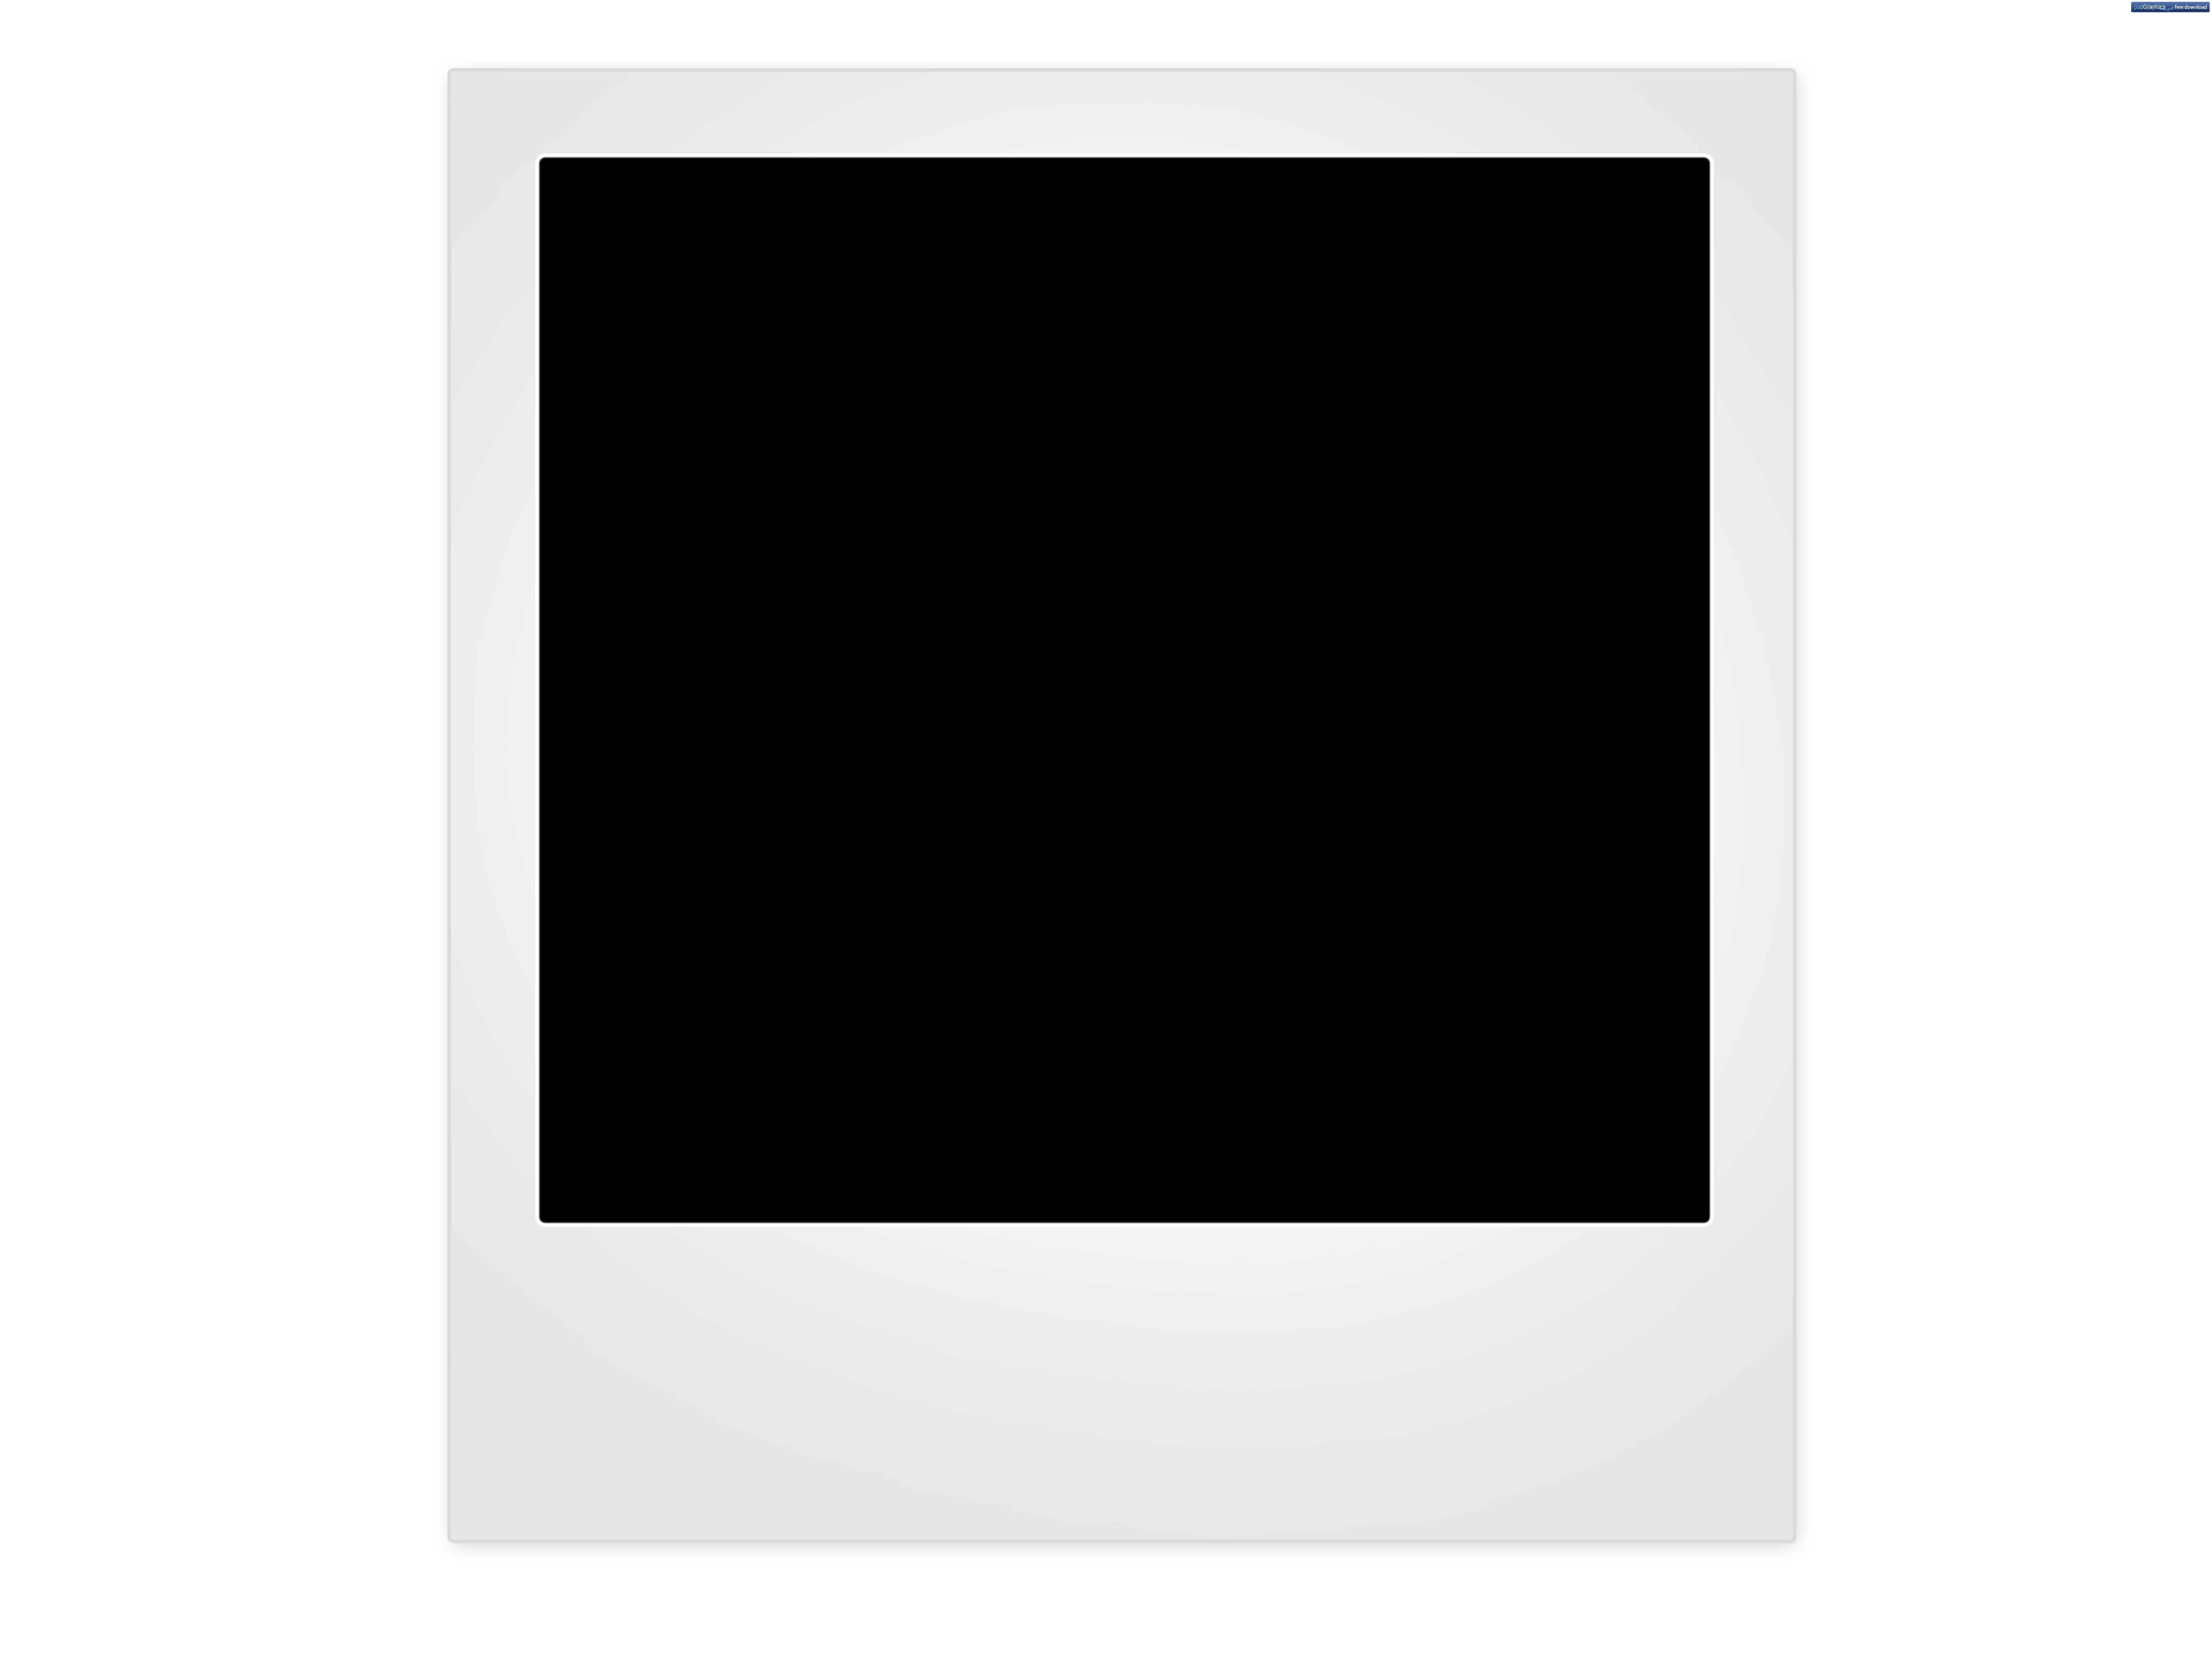 Blank polaroid frame background